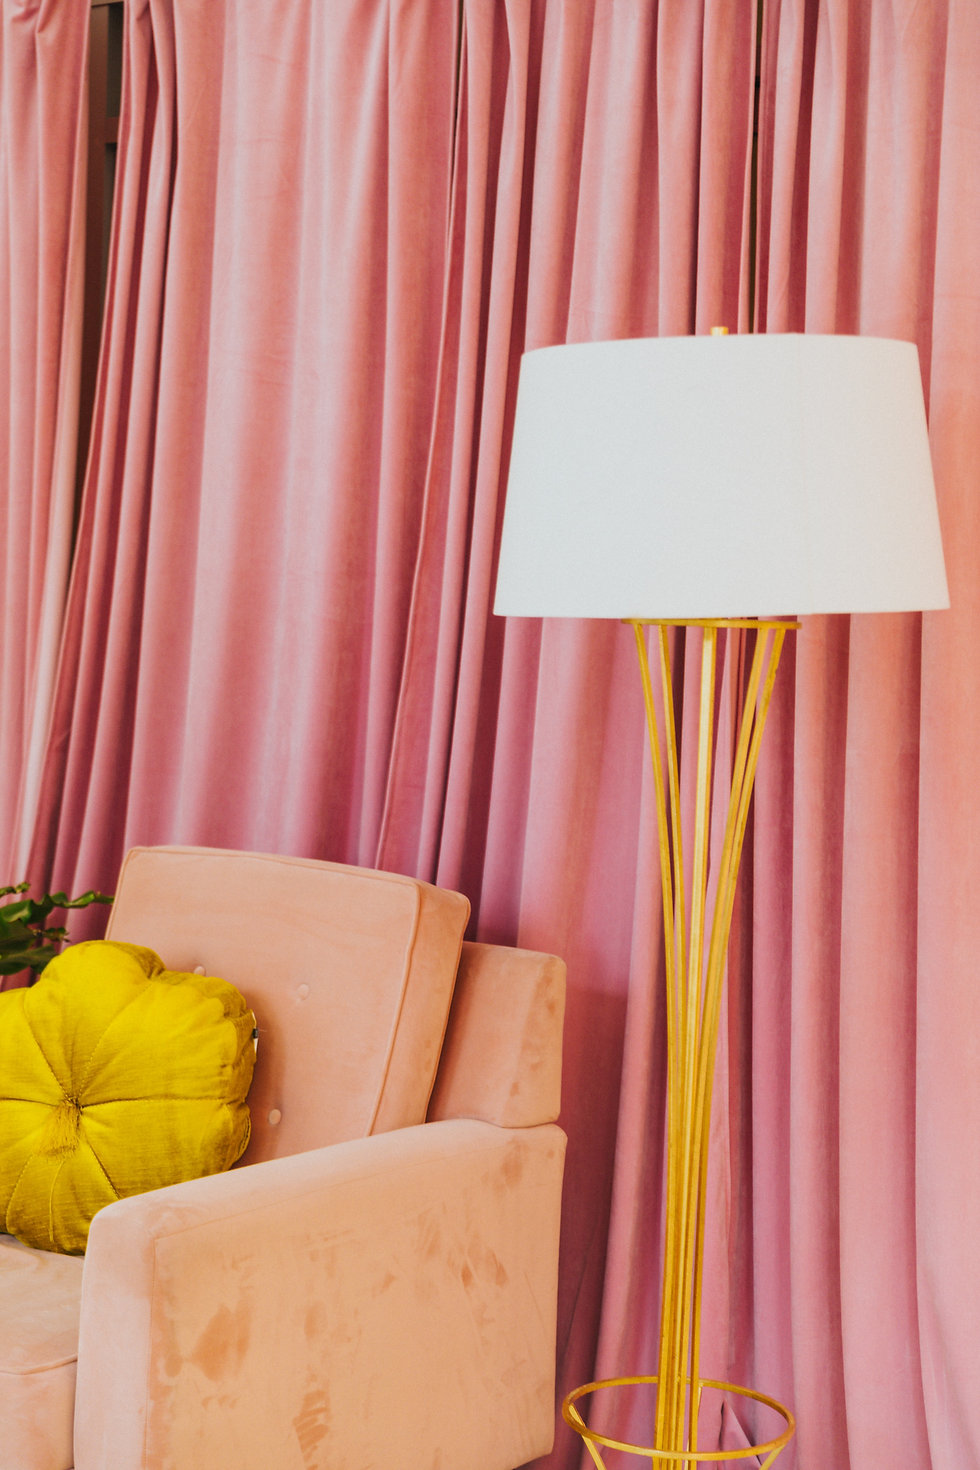 Peach armchair pink curtain and a yellow standing lamp